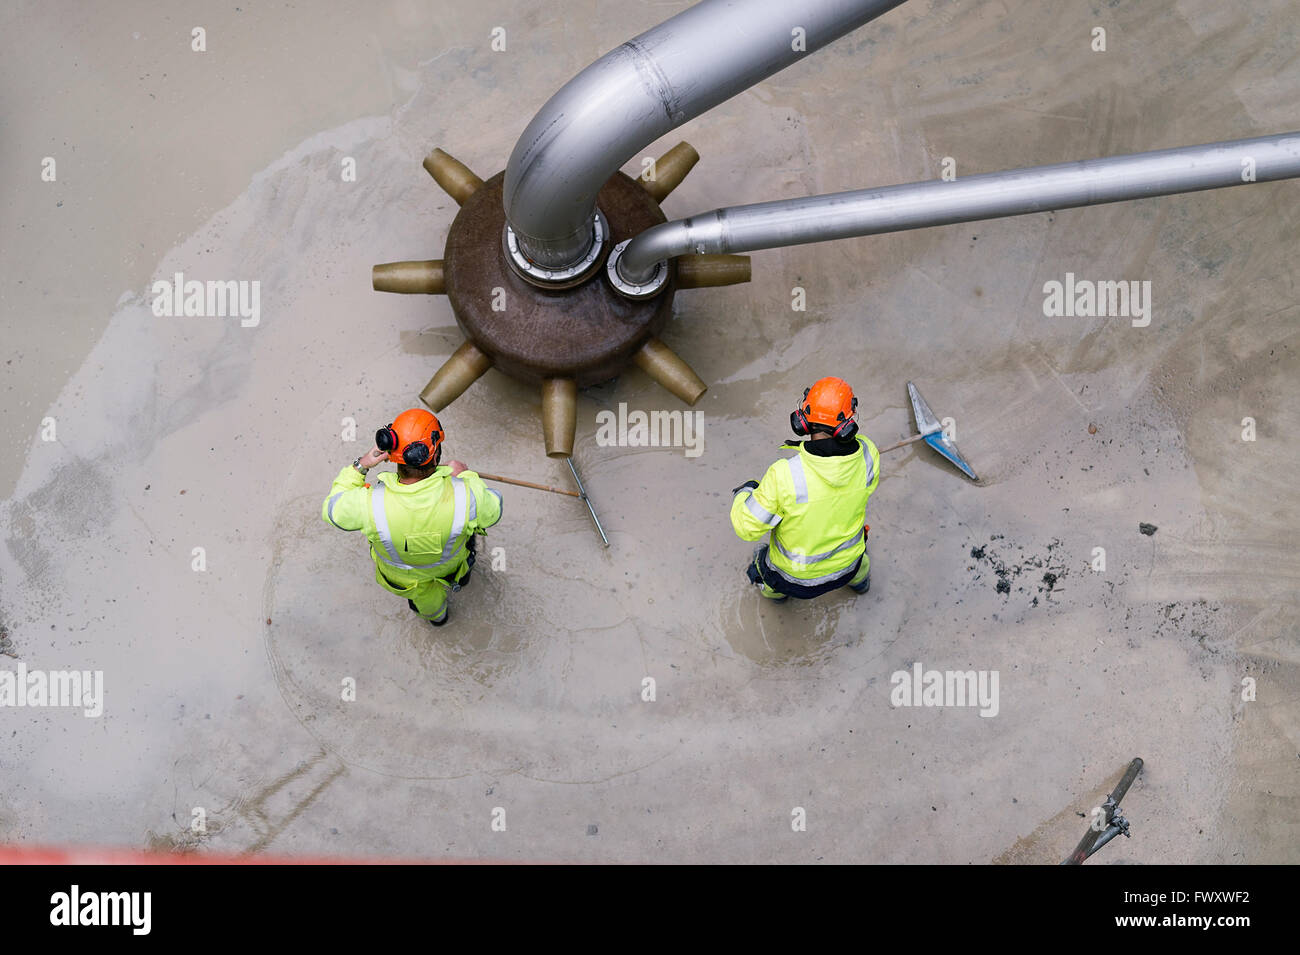 Sweden, Vastmanland, Two men working at water treatment plant - Stock Image